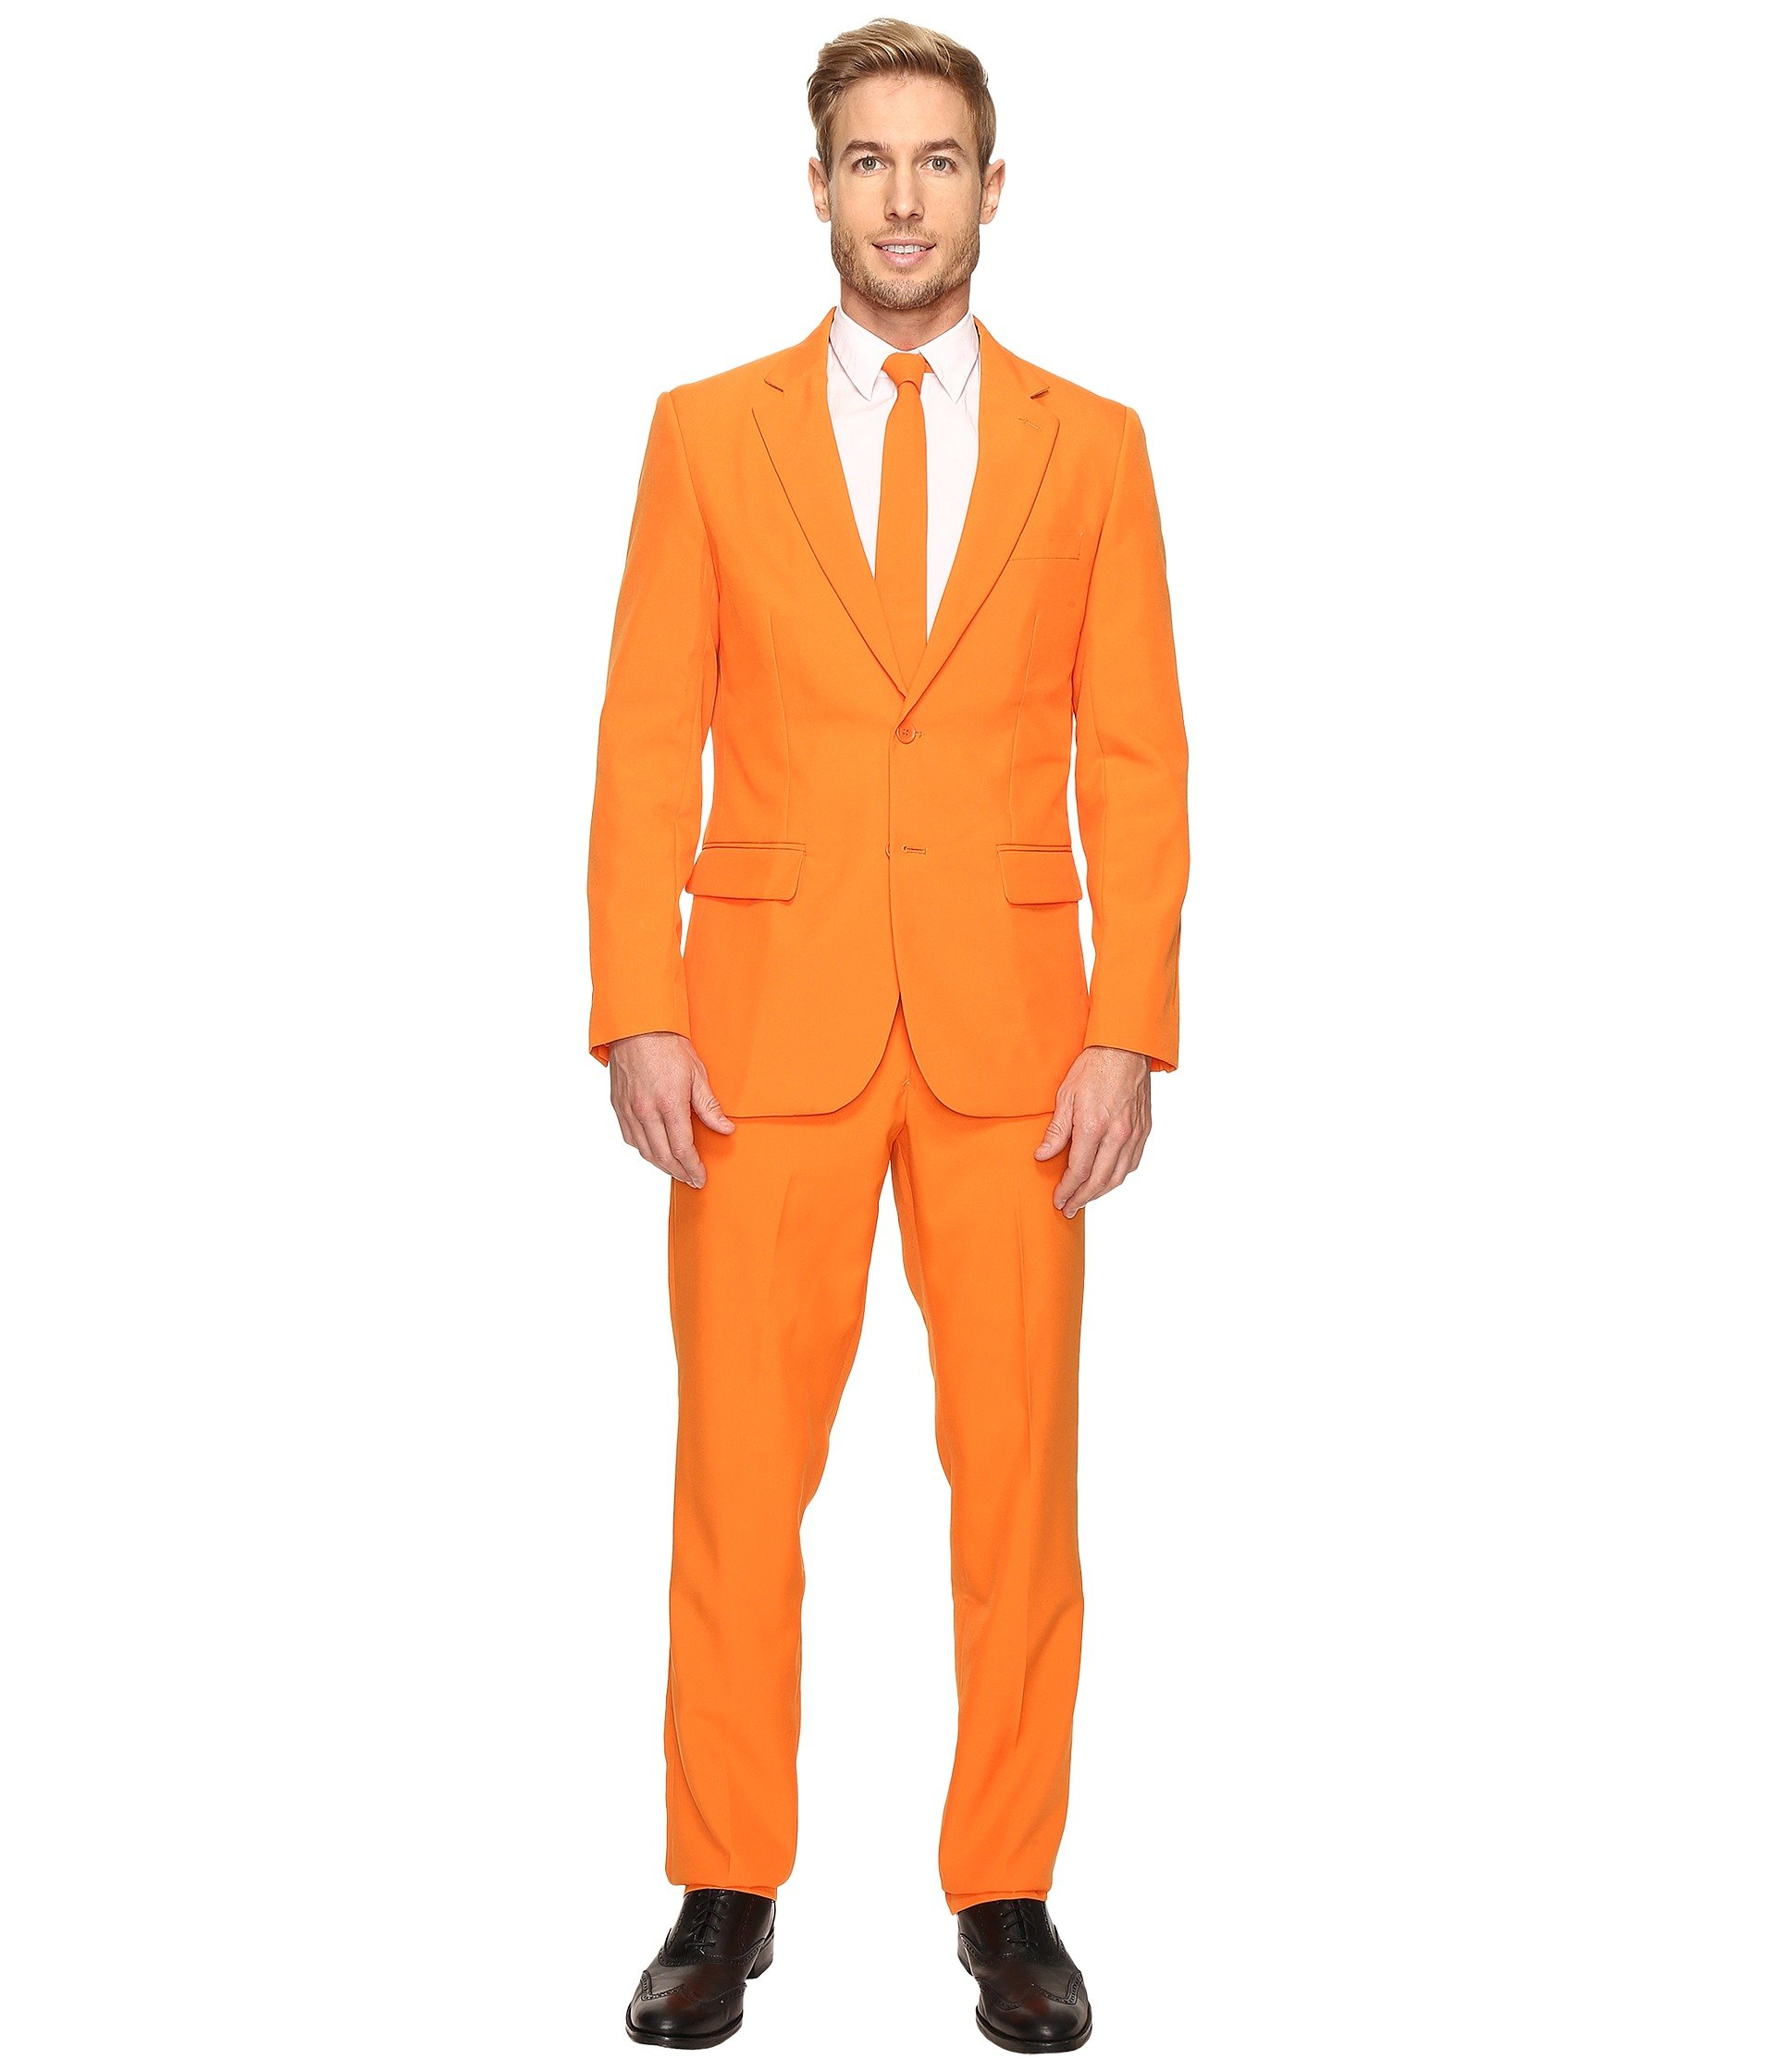 Vestido para Hombre OppoSuits The Orange Suit  + OppoSuits en VeoyCompro.net